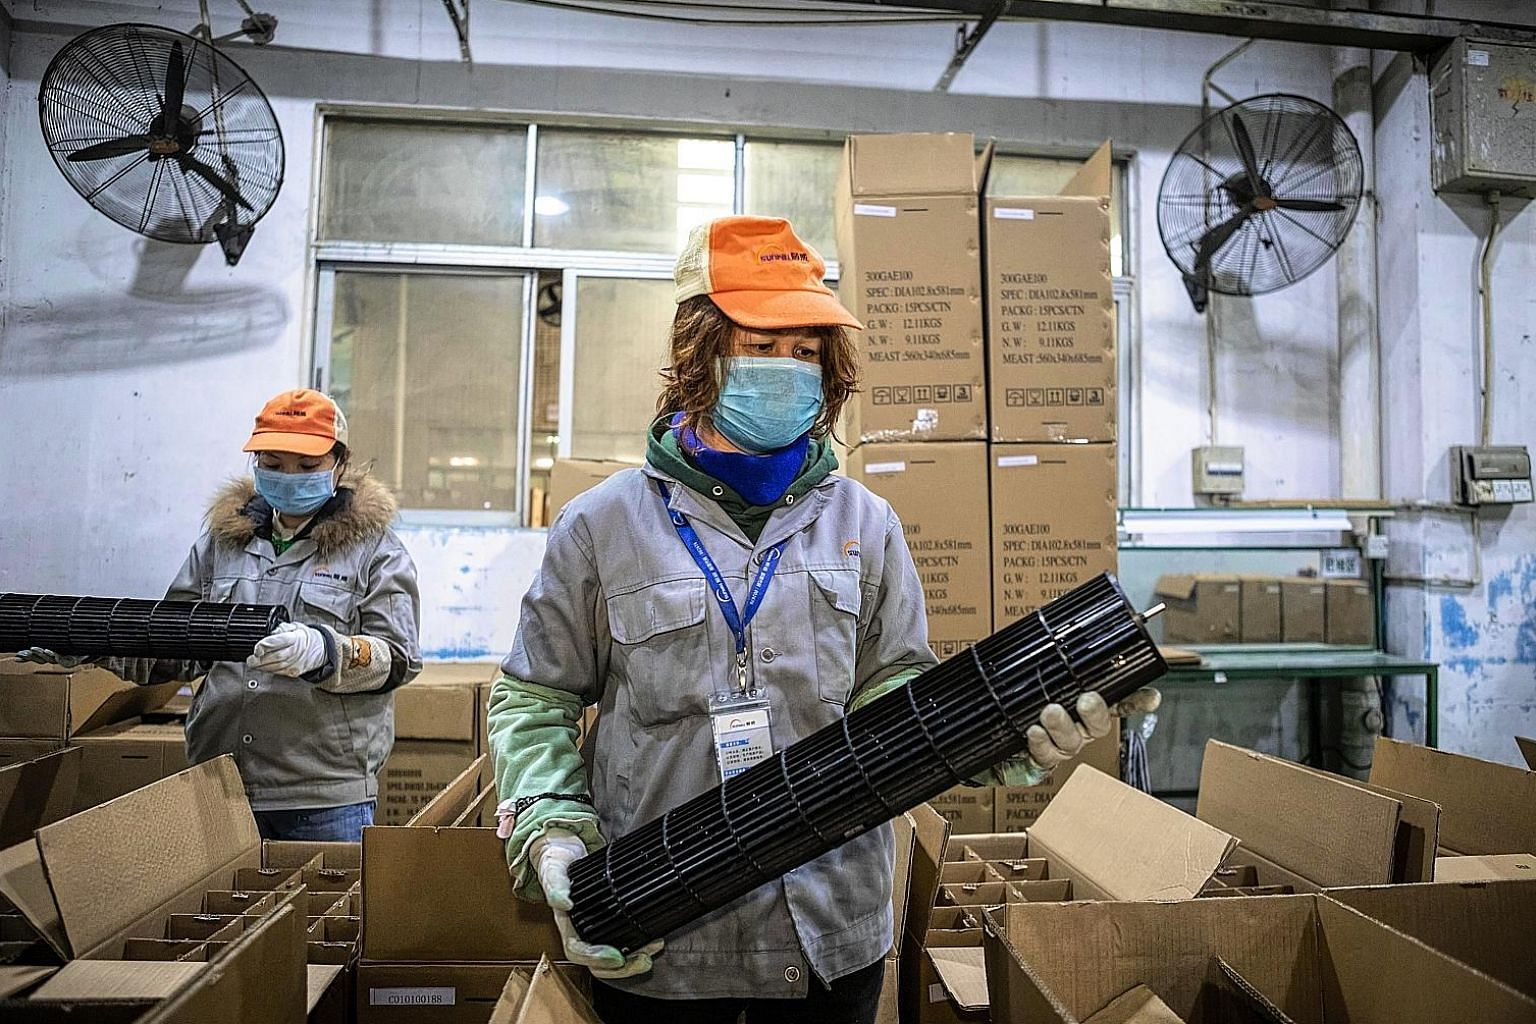 Factory workers in Foshan, China, where many factories have been closed because of the coronavirus outbreak. Individual psychology affects companies, with investment and supply-chain decisions governed by projections about demand during an epidemic a